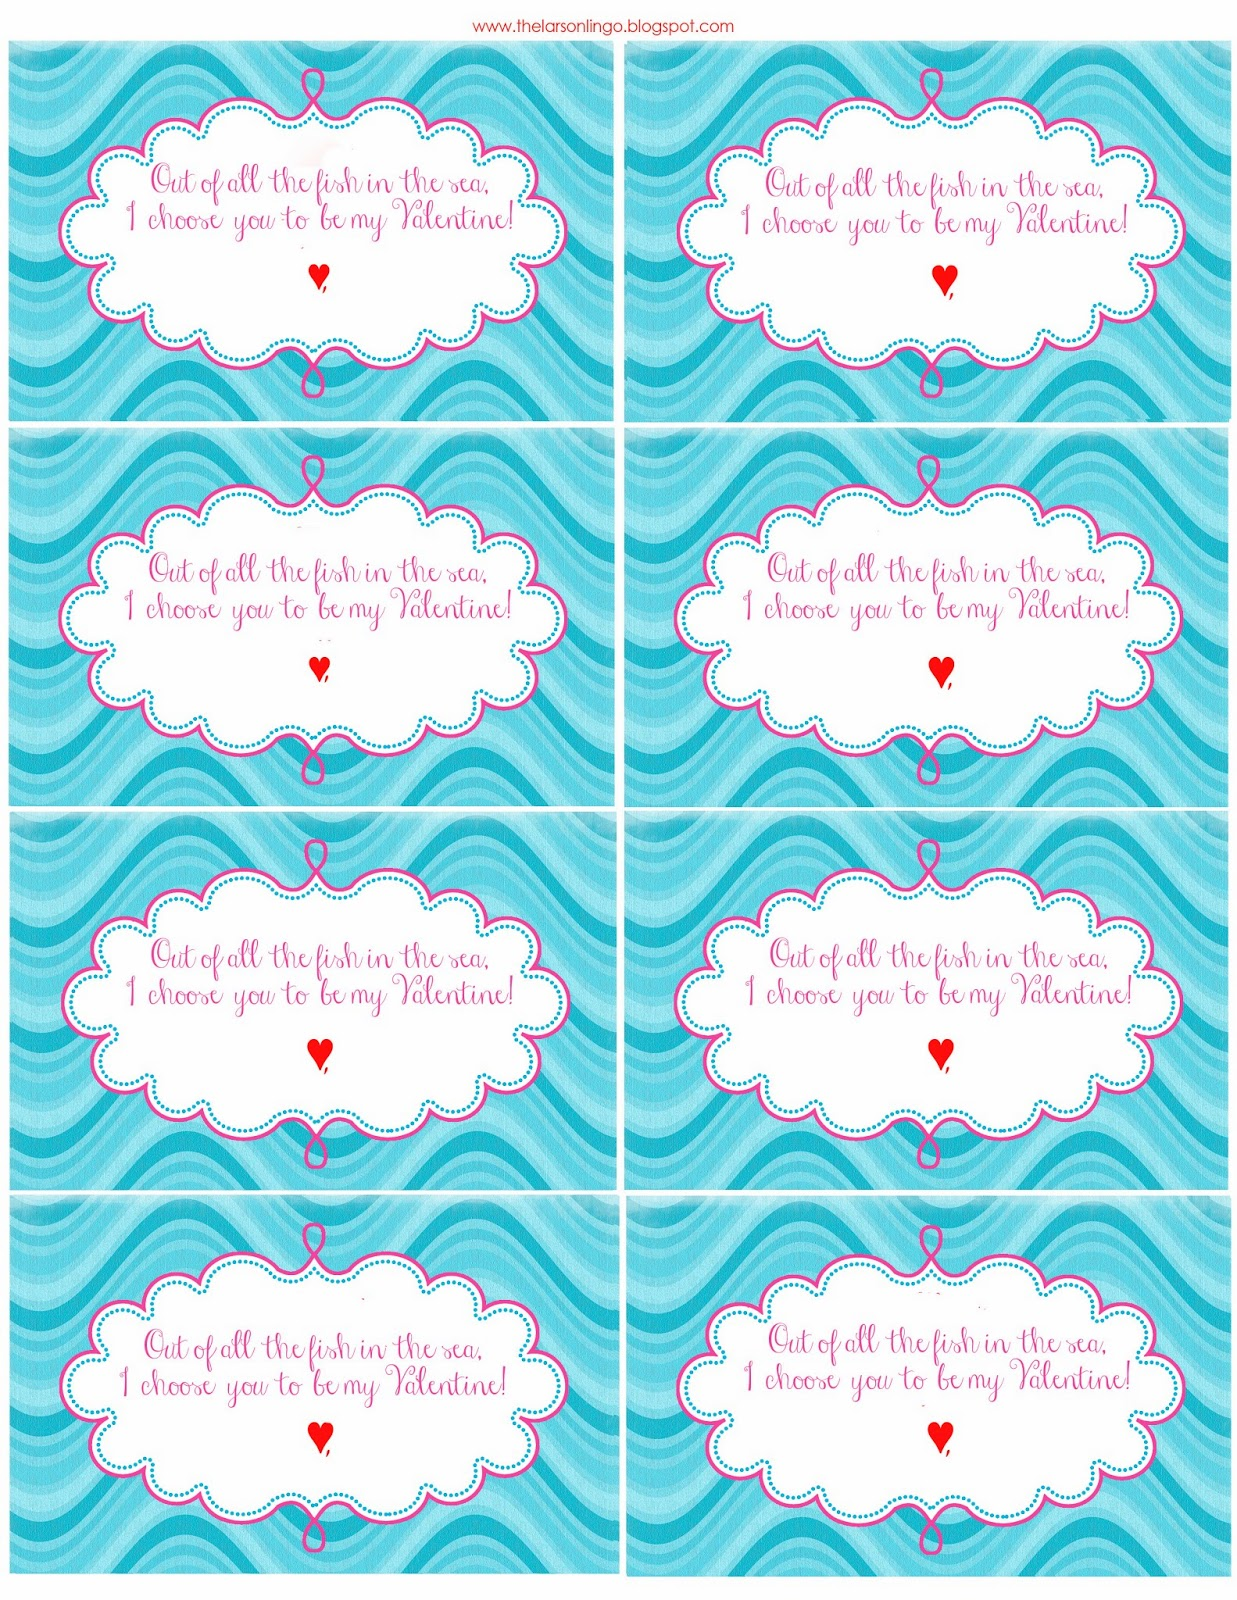 7 Images of Fish Valentine's Printables